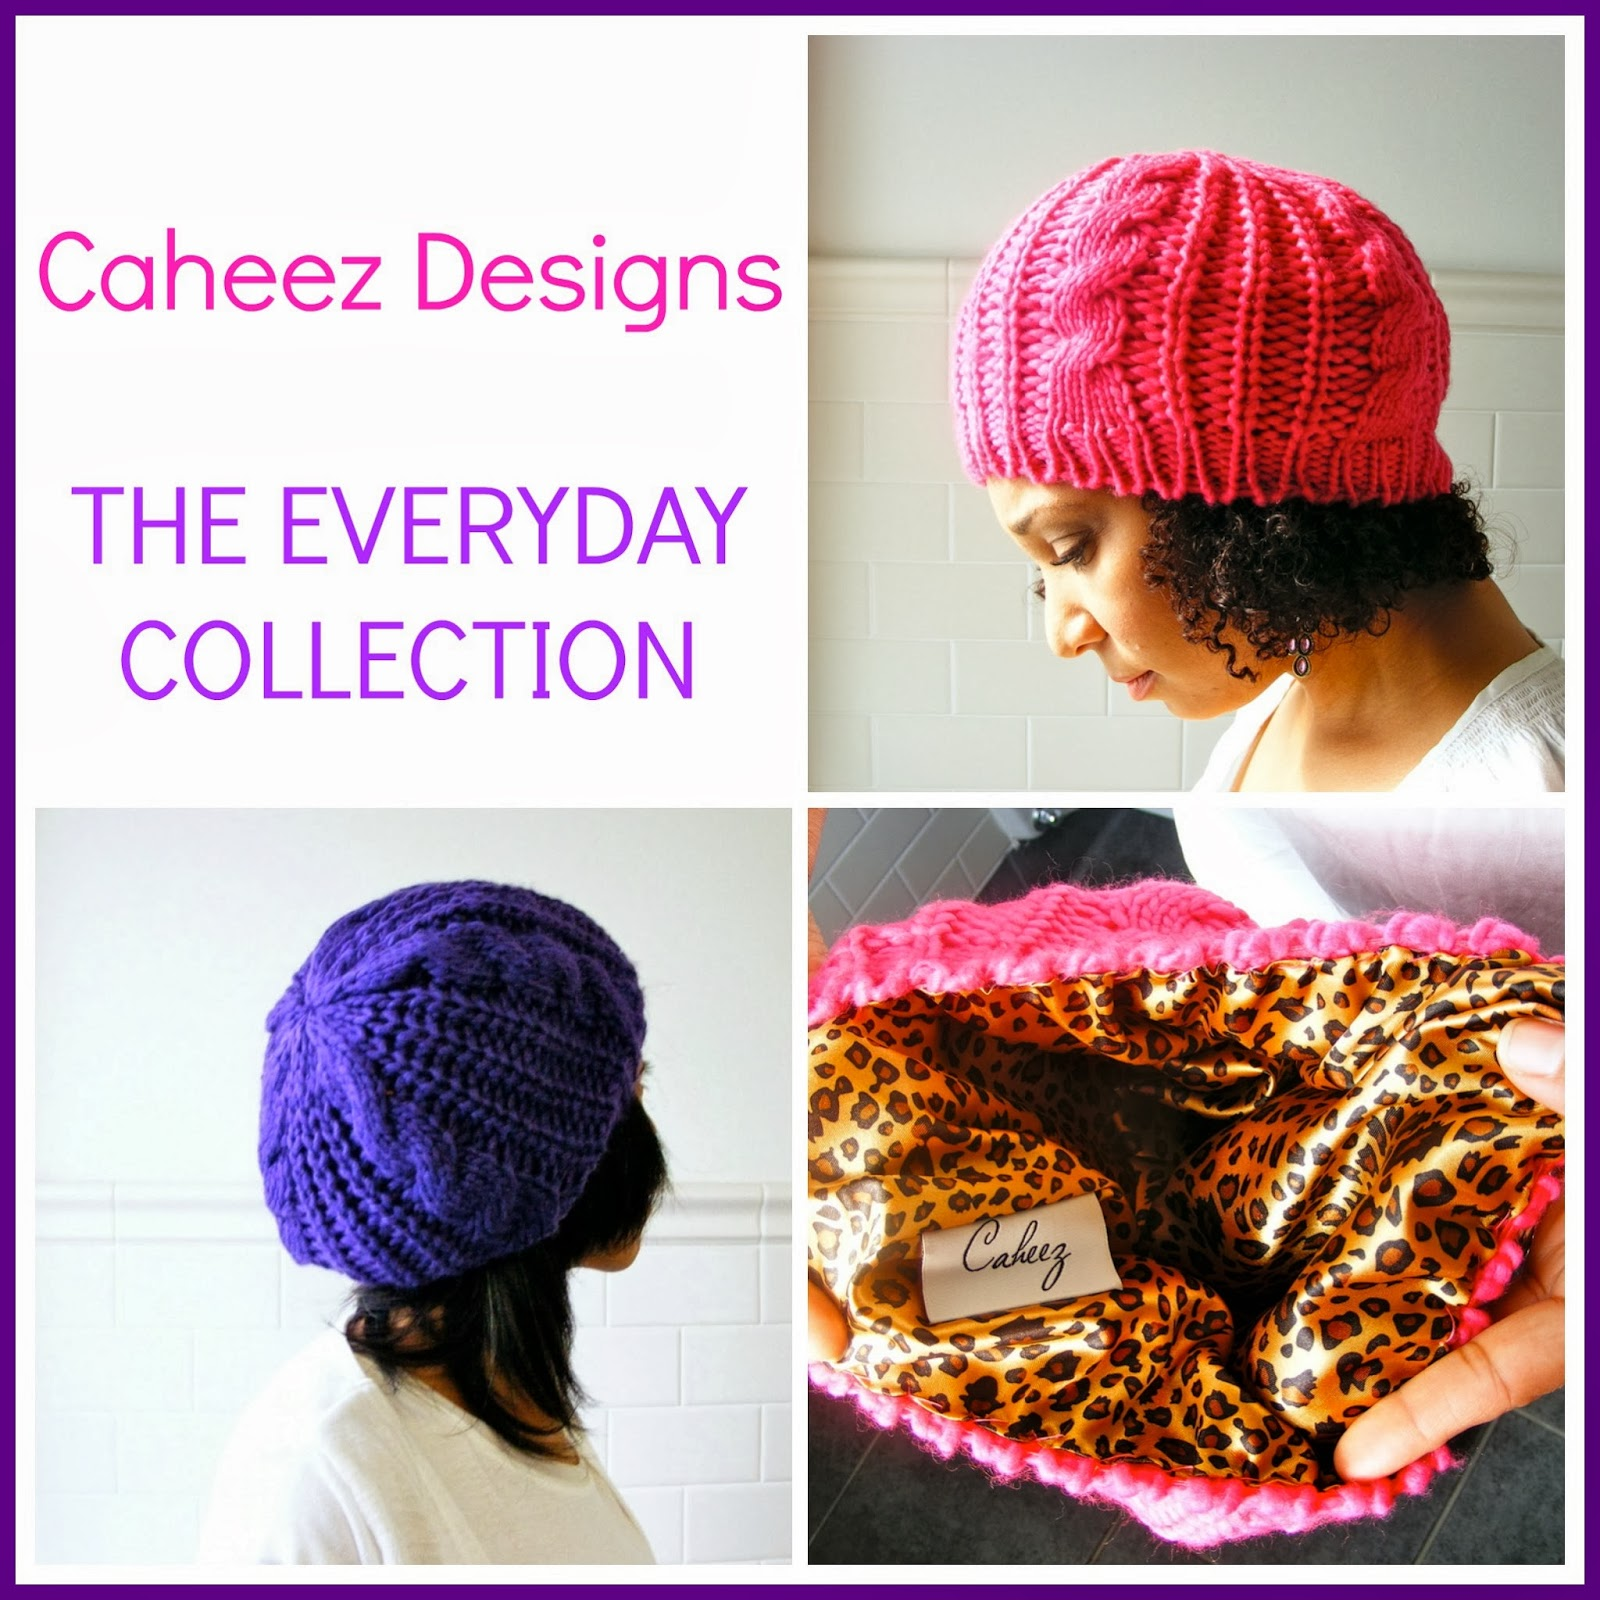 Product Review - Caheez Designs by Carla Helene